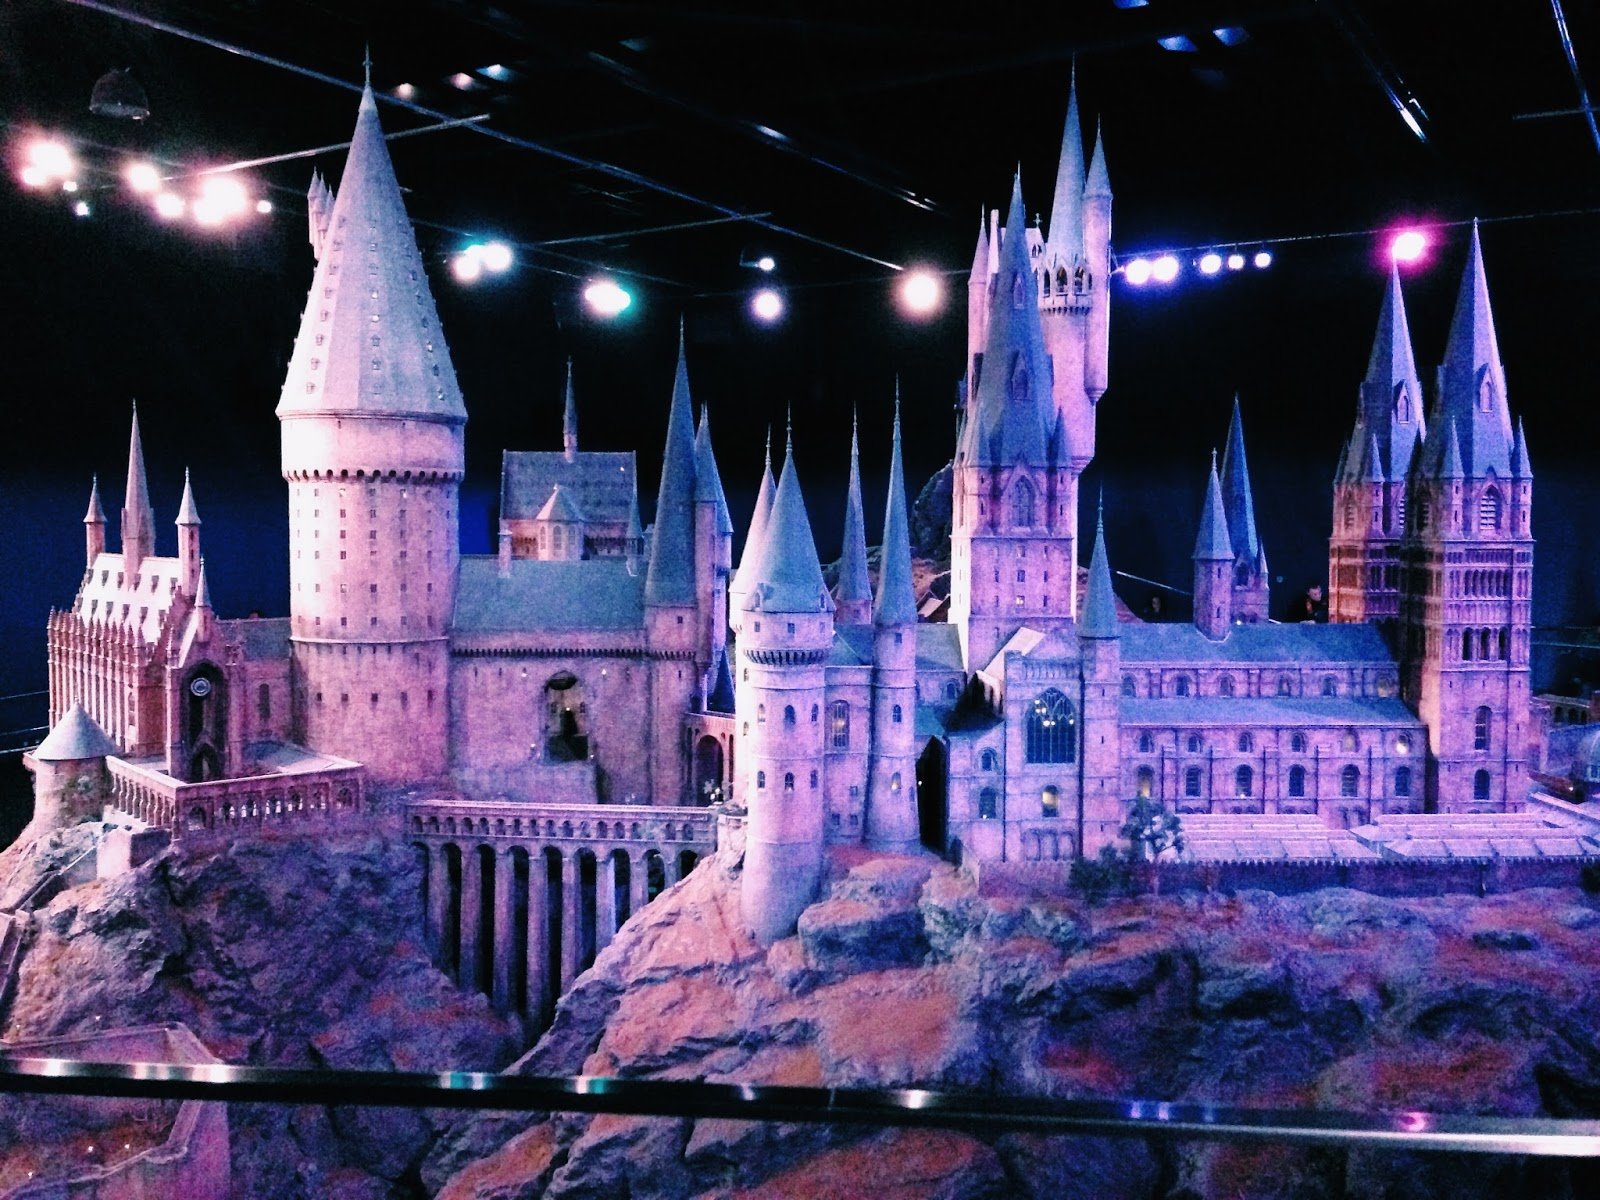 harry potter studio tour photos, harry potter castle, hogwarts model